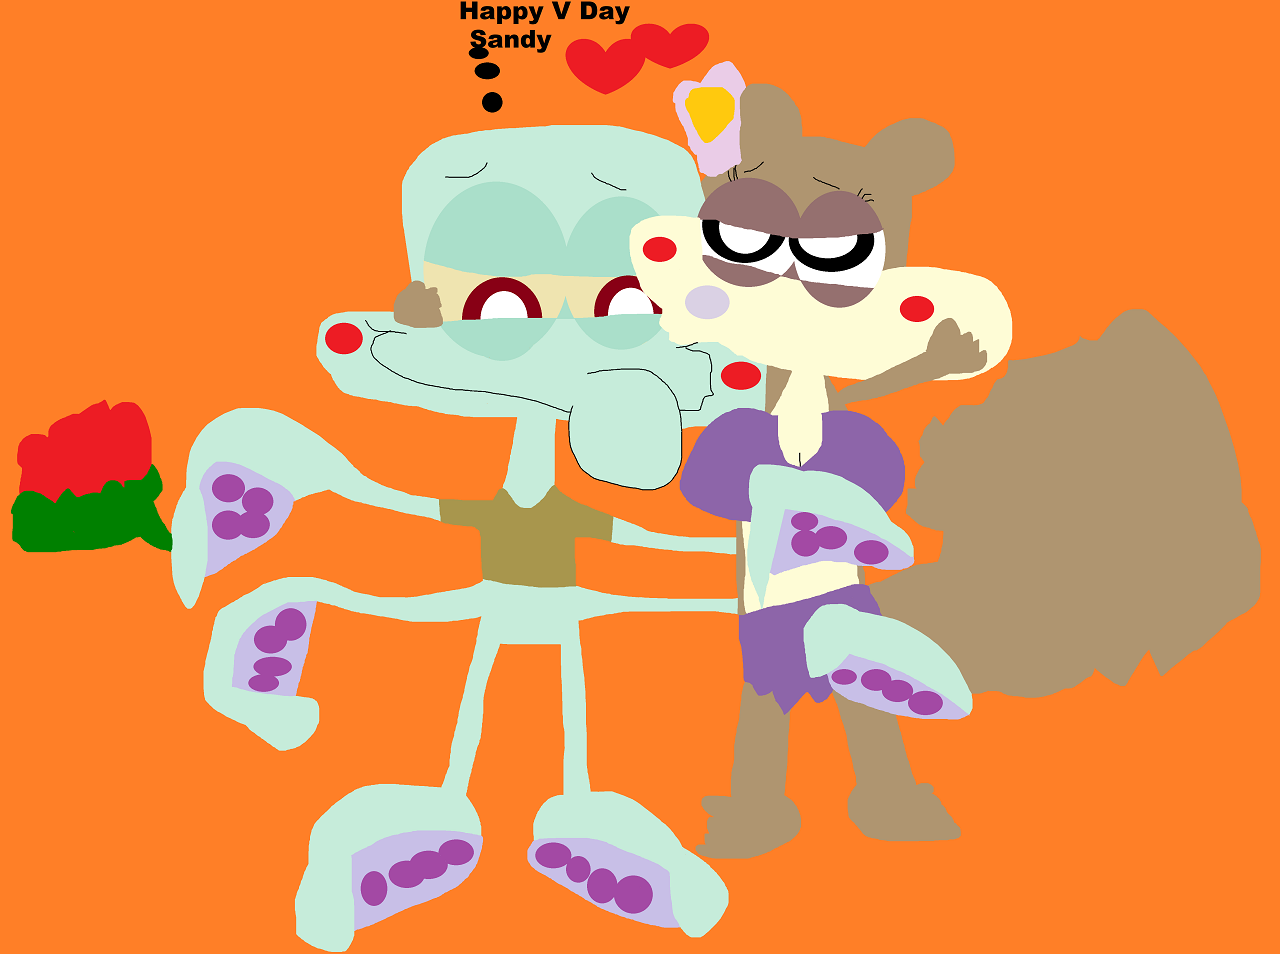 Squidward Has Flowers For Sandy For V Day by Falconlobo